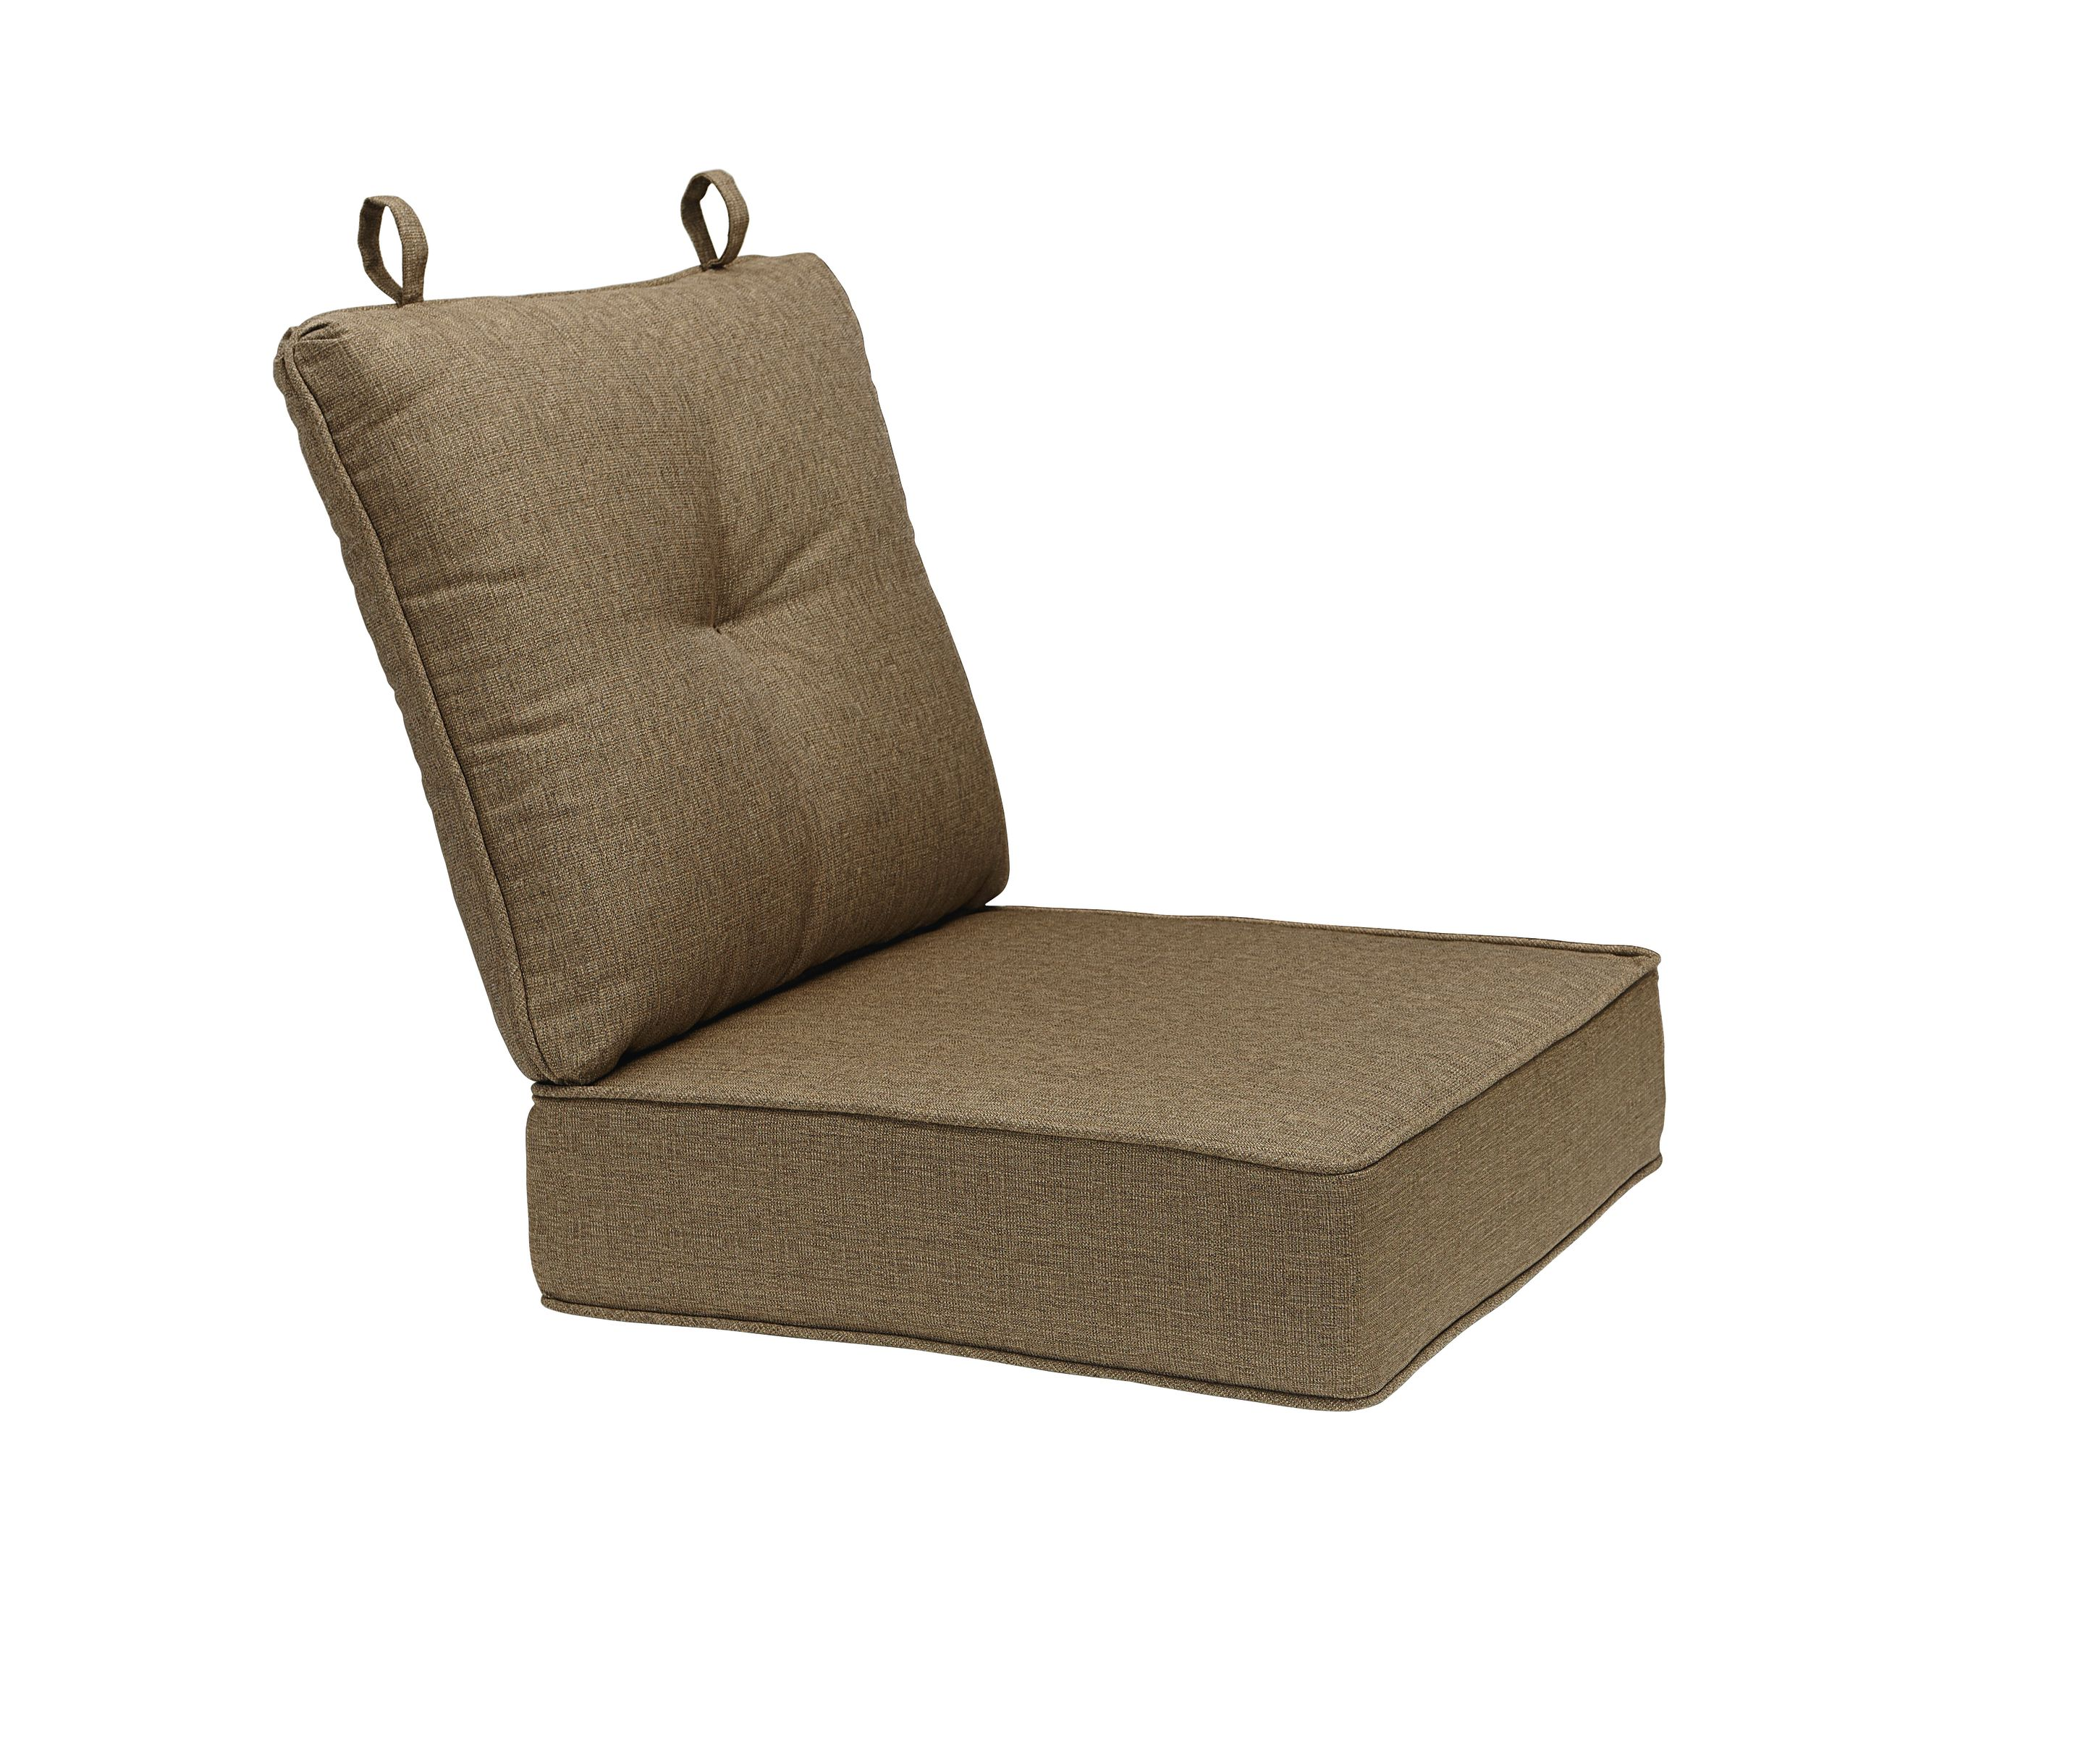 outdoor sofa covers australia living room with dark green replacement seat cushions cushion